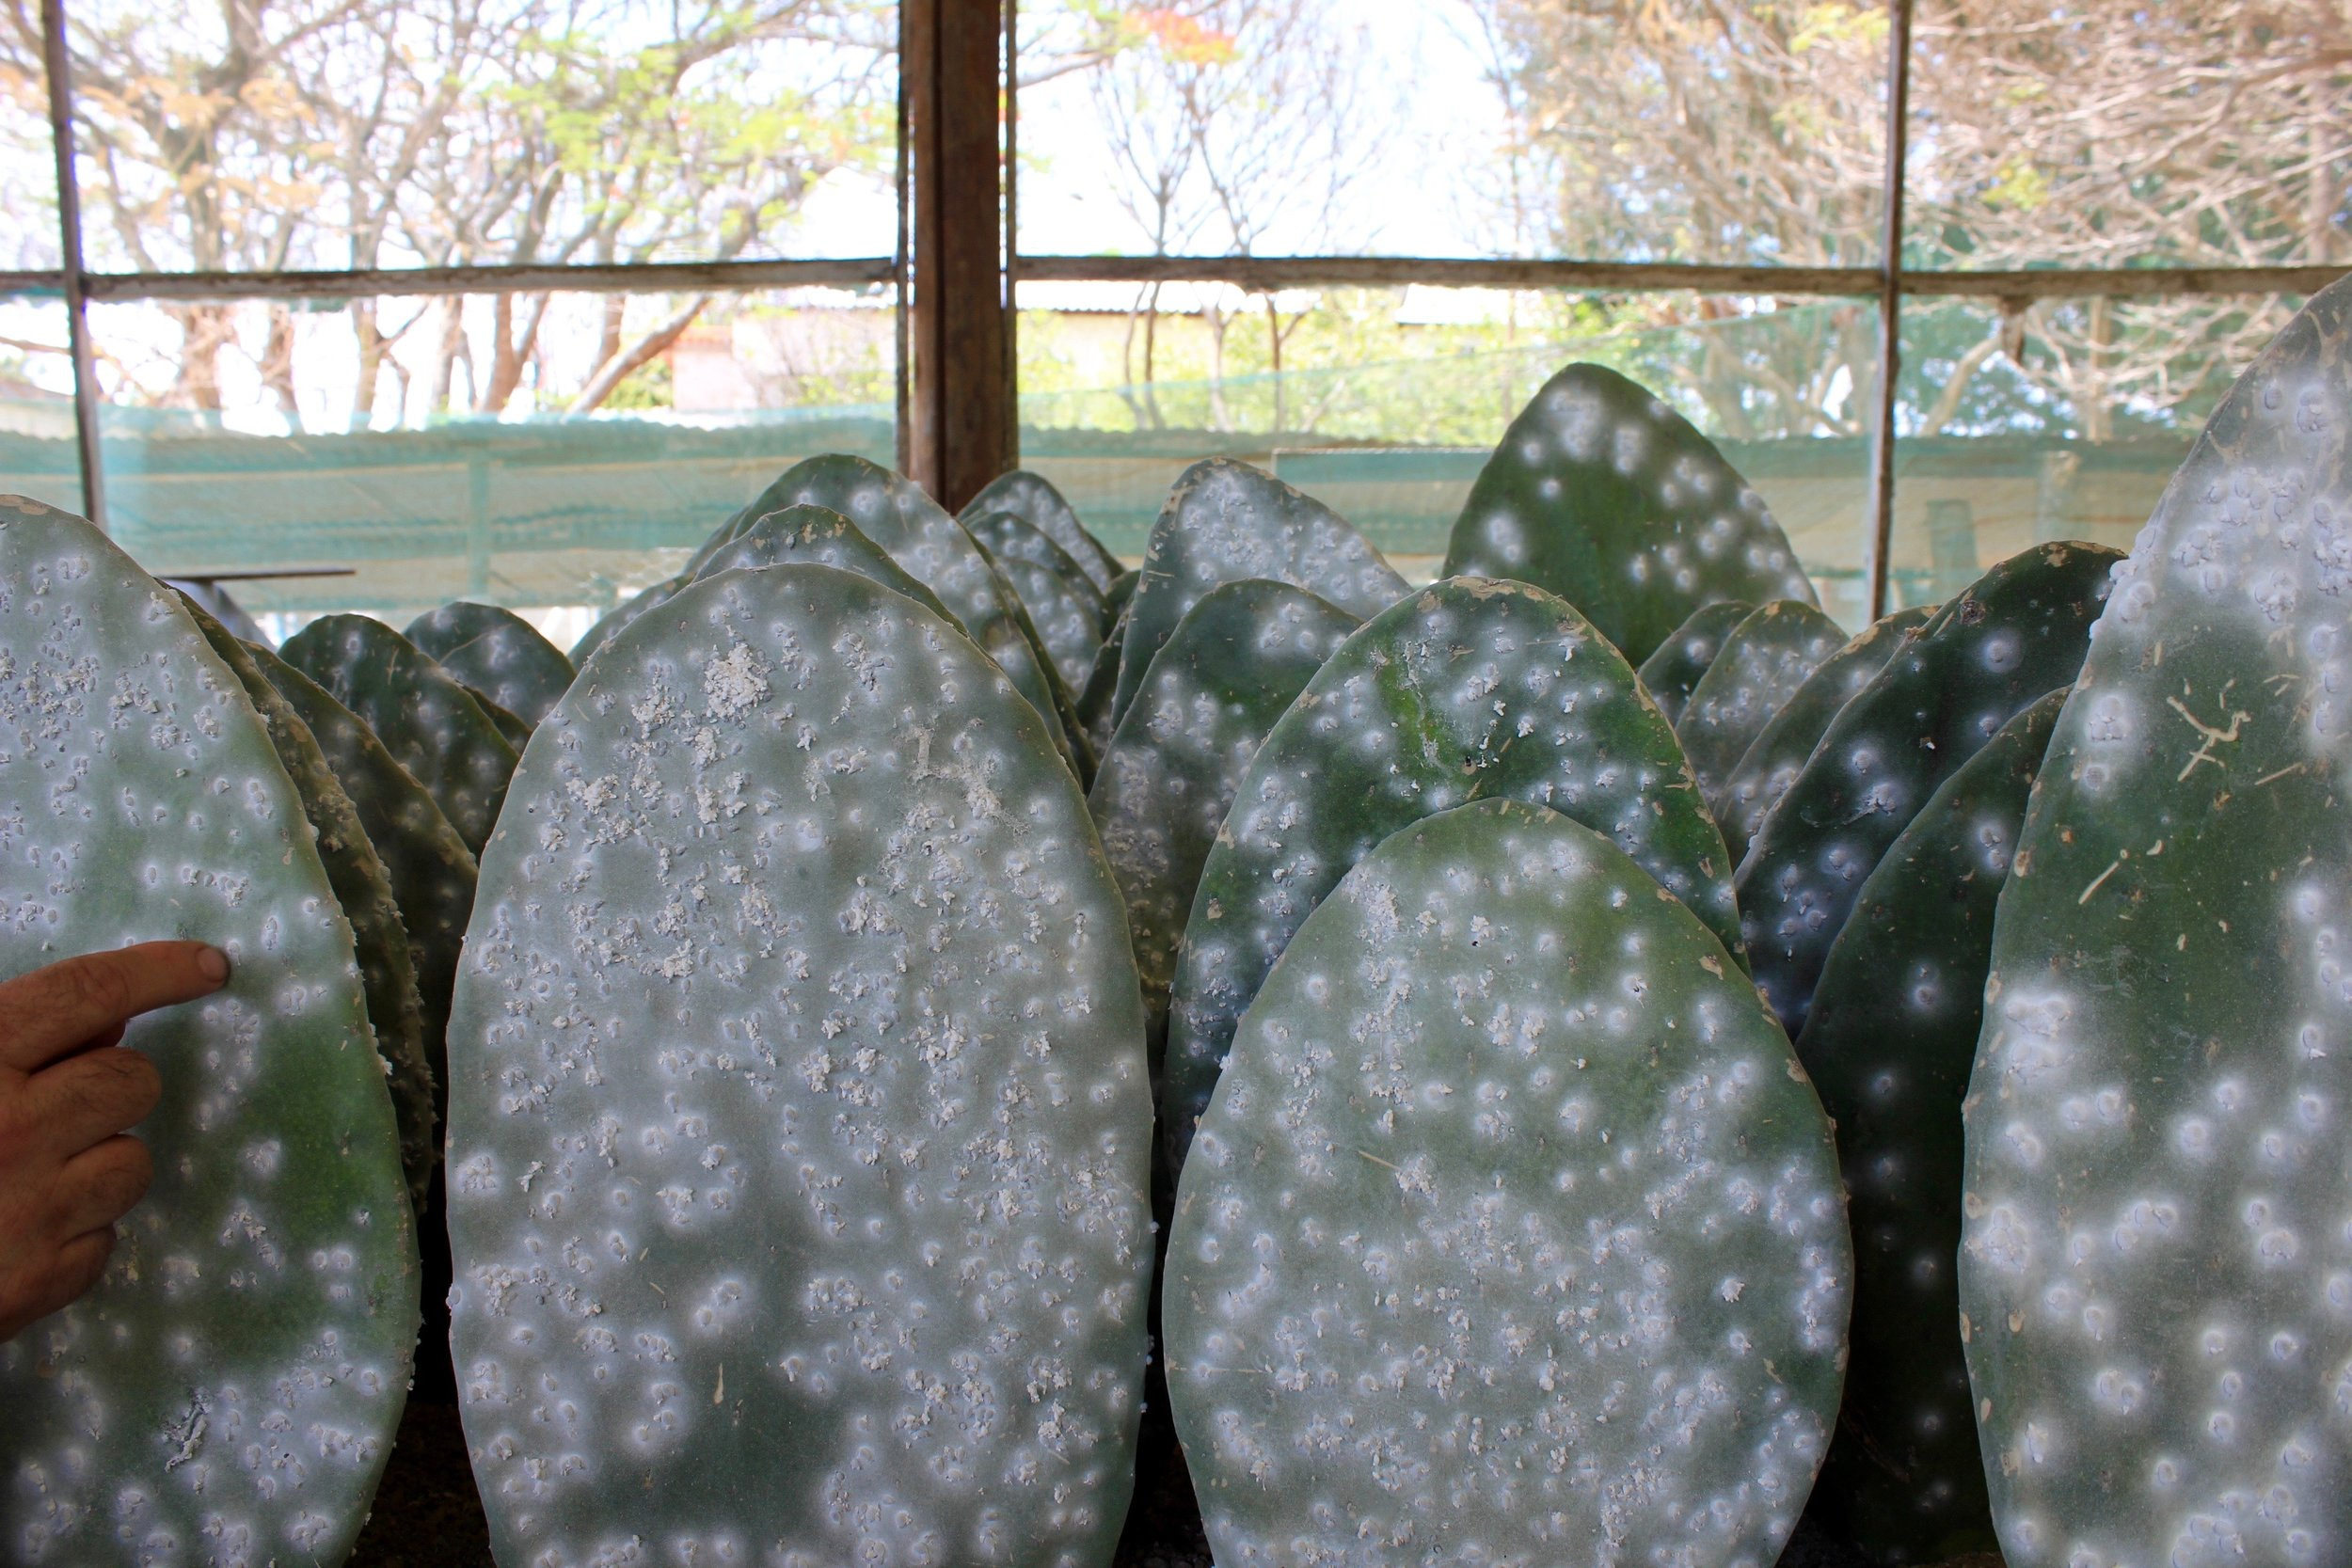 Cactus paddles fully infested with cochineal